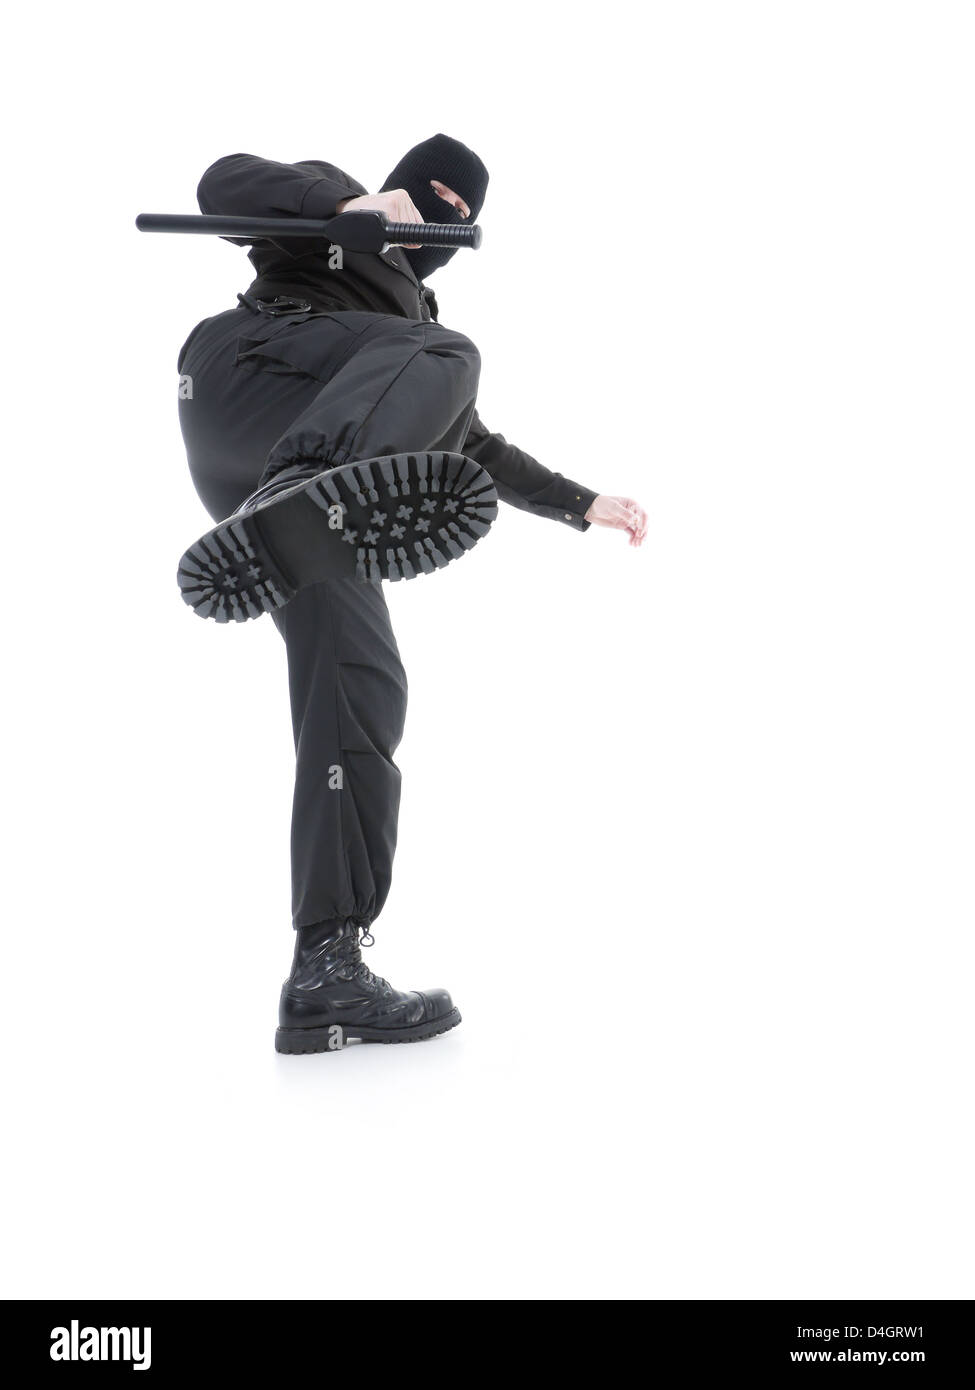 Anti-terrorist police guy wearing black uniform and black mask making a side kick, shot on white - Stock Image